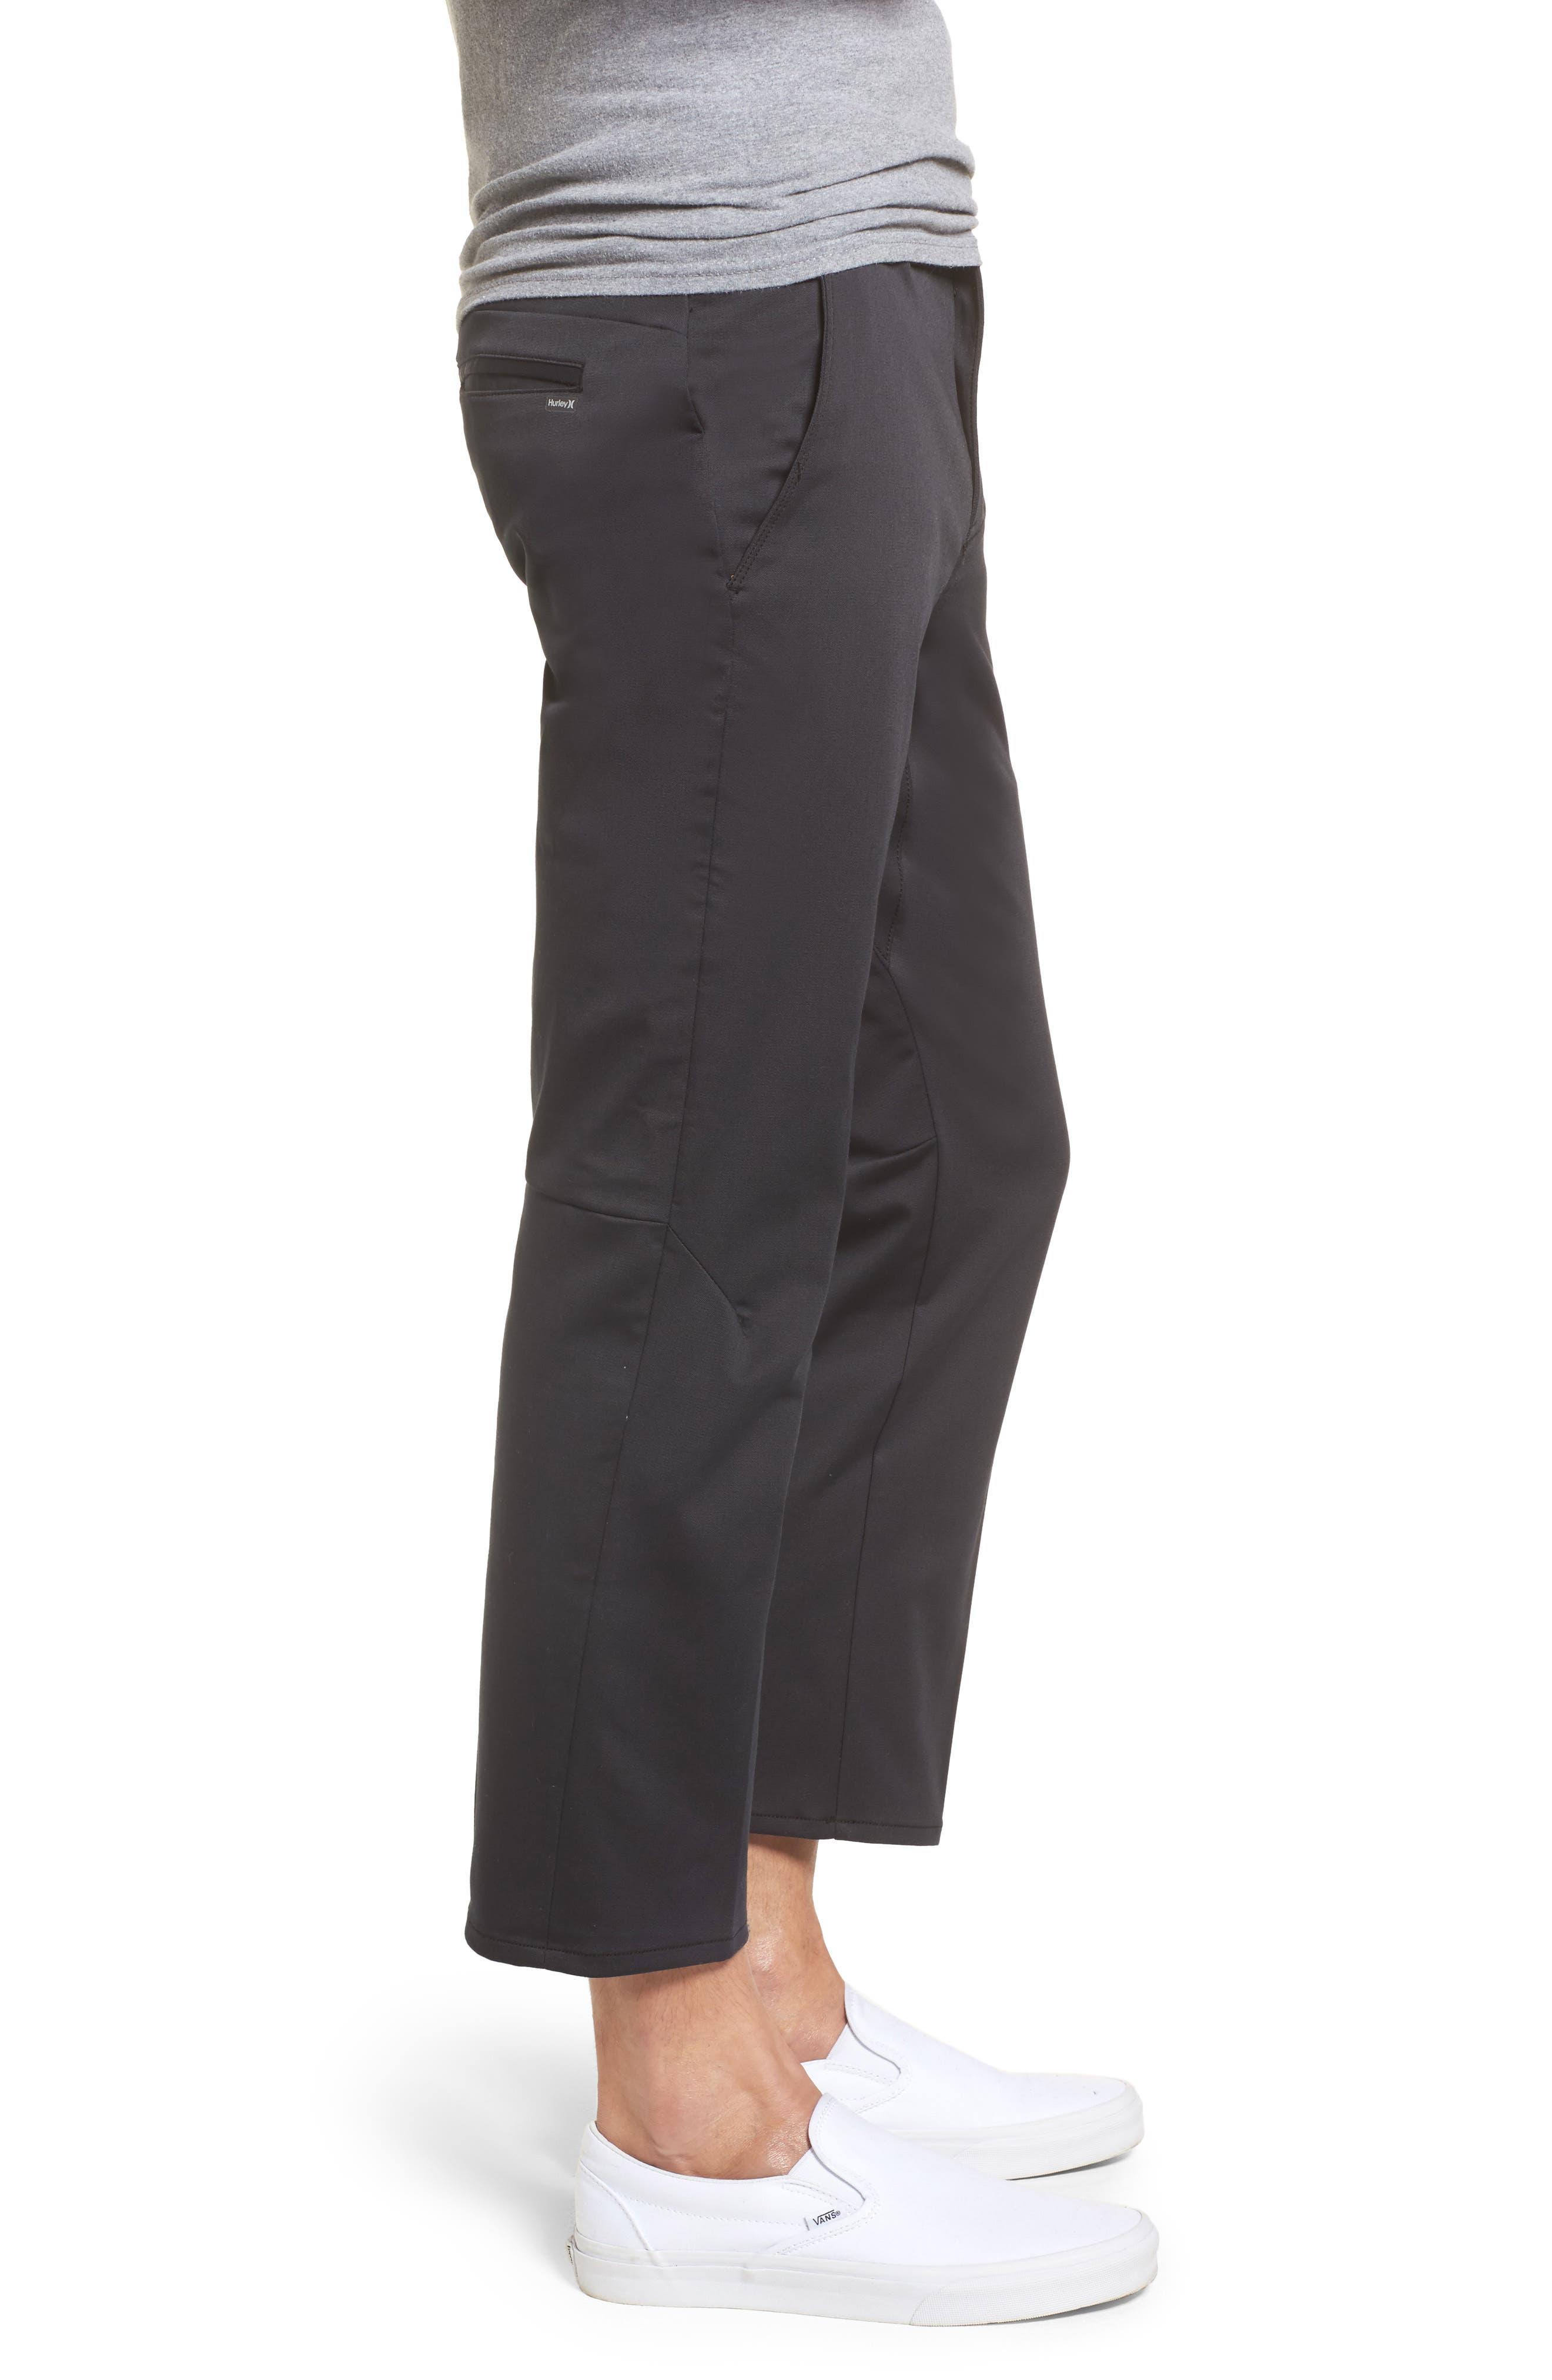 Covert Slim Fit Crop Pants,                             Alternate thumbnail 3, color,                             010